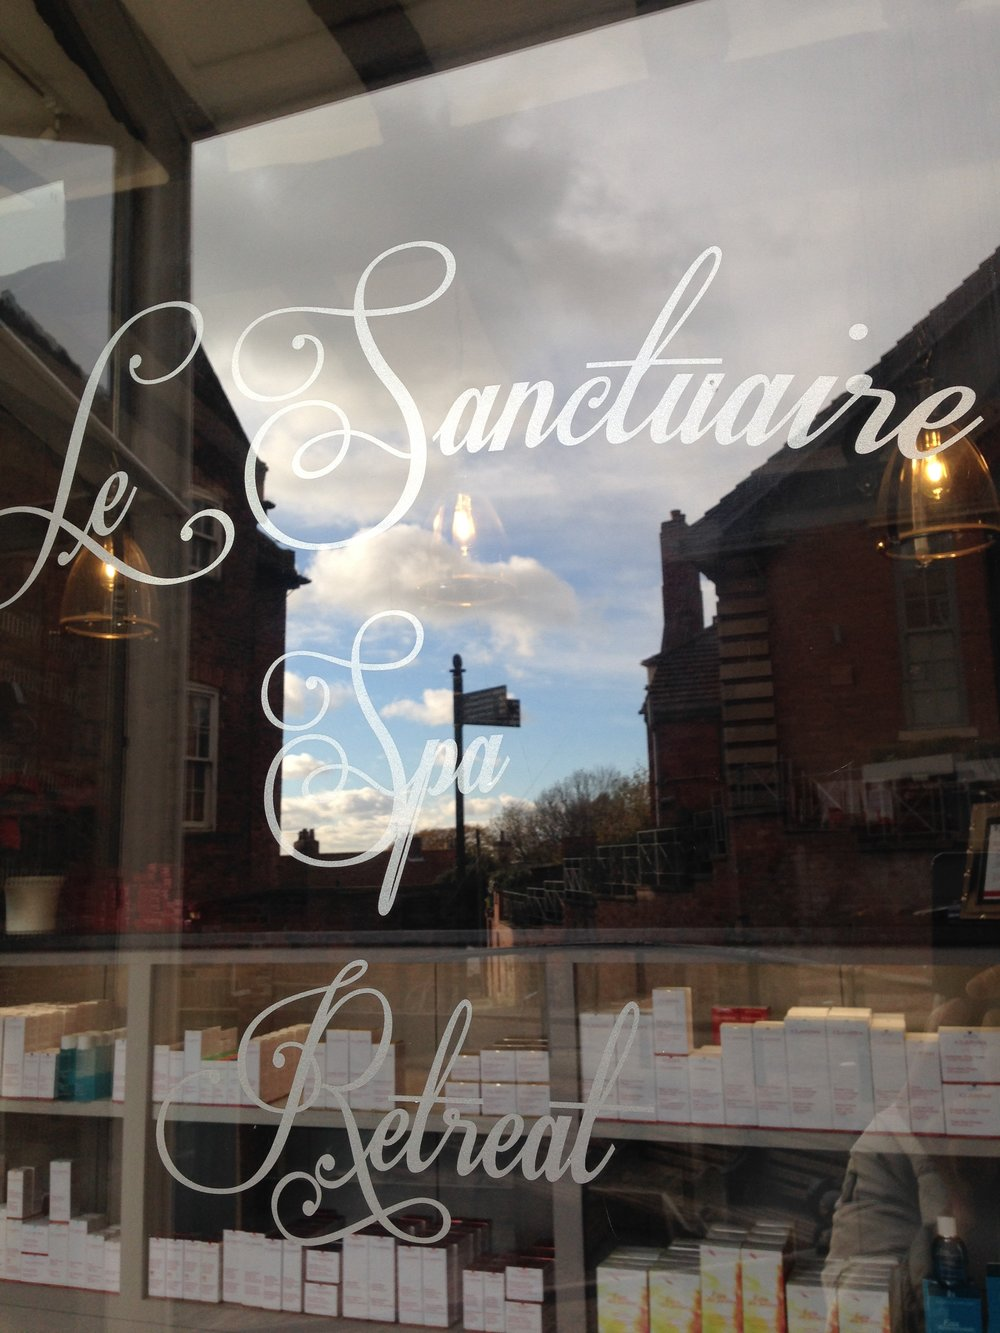 Le Sanctuaire at 13-15 Steep Hill, a haven of indulgent treatments, therapies and yoga.